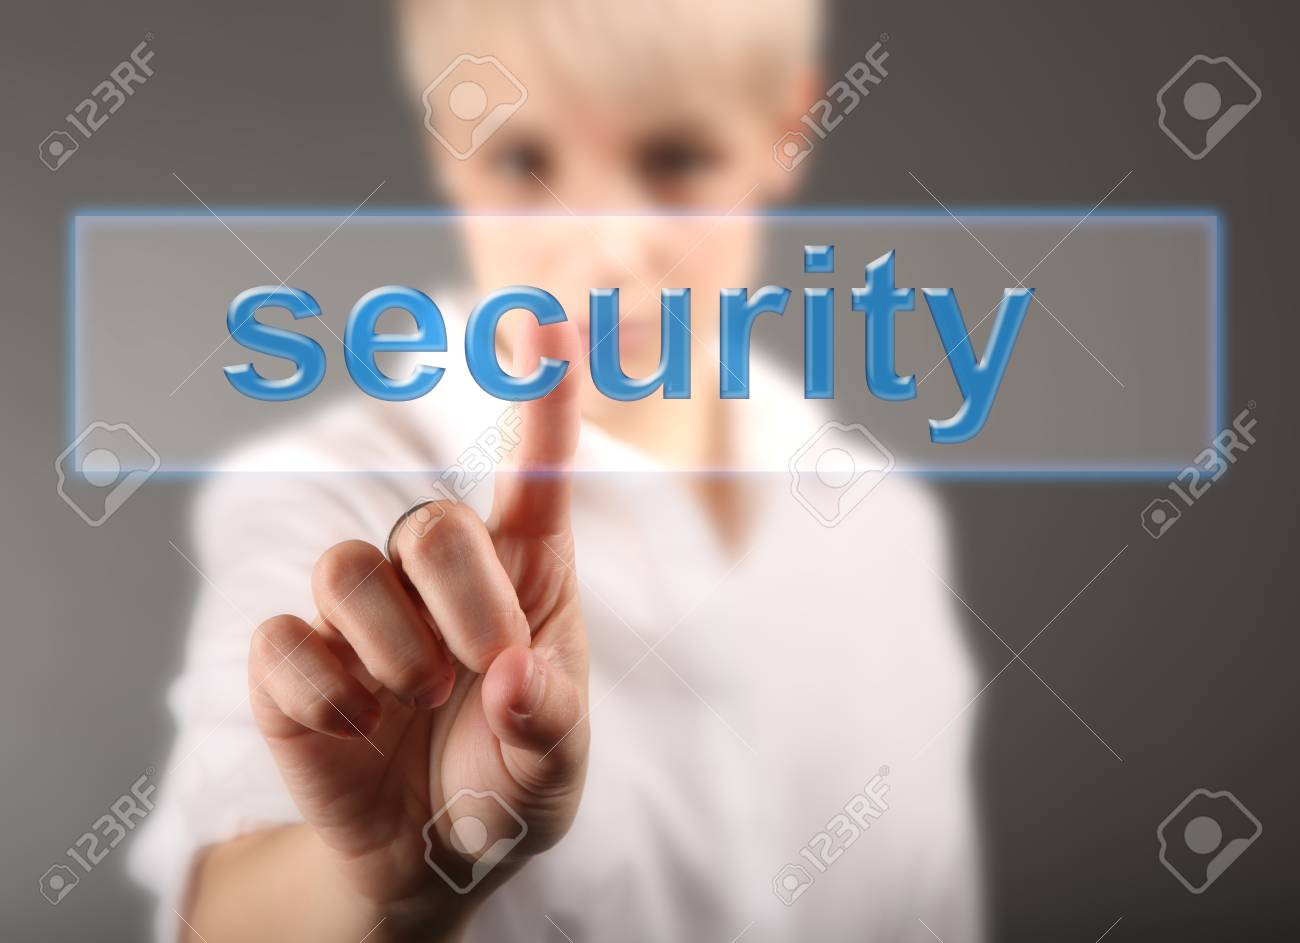 Security concept - business woman and word button Stock Photo - 17394719